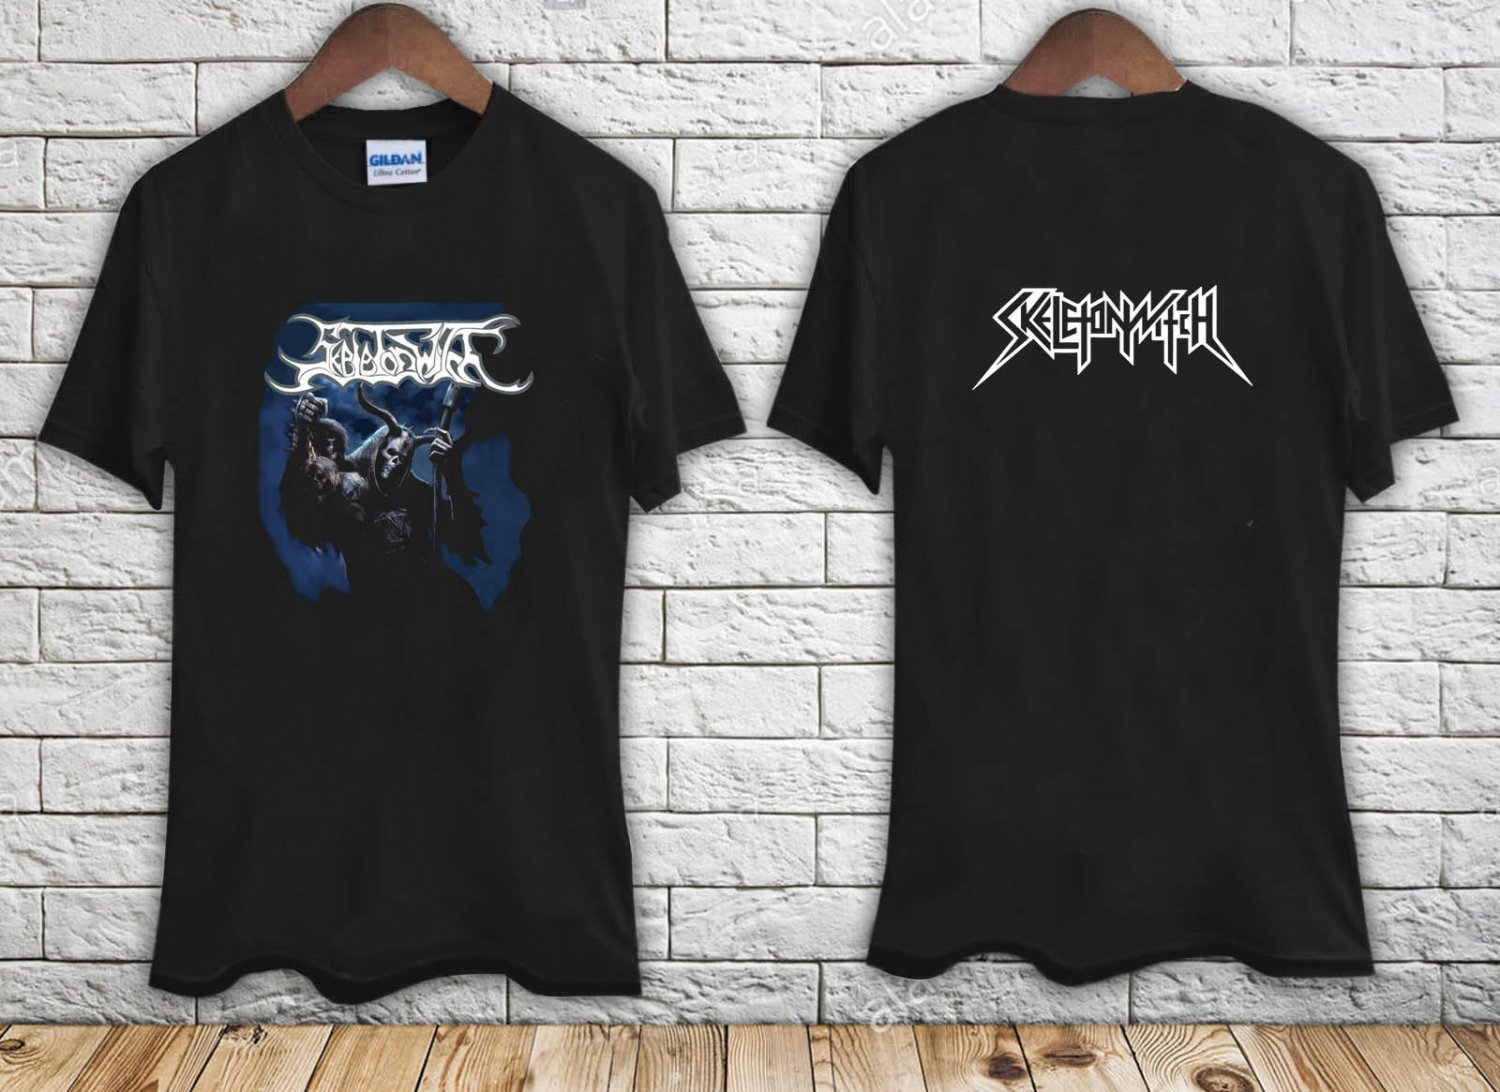 SKELETONWITCH (At One With The Shadows) black t-shirt tshirt shirts tee SIZE 2XL